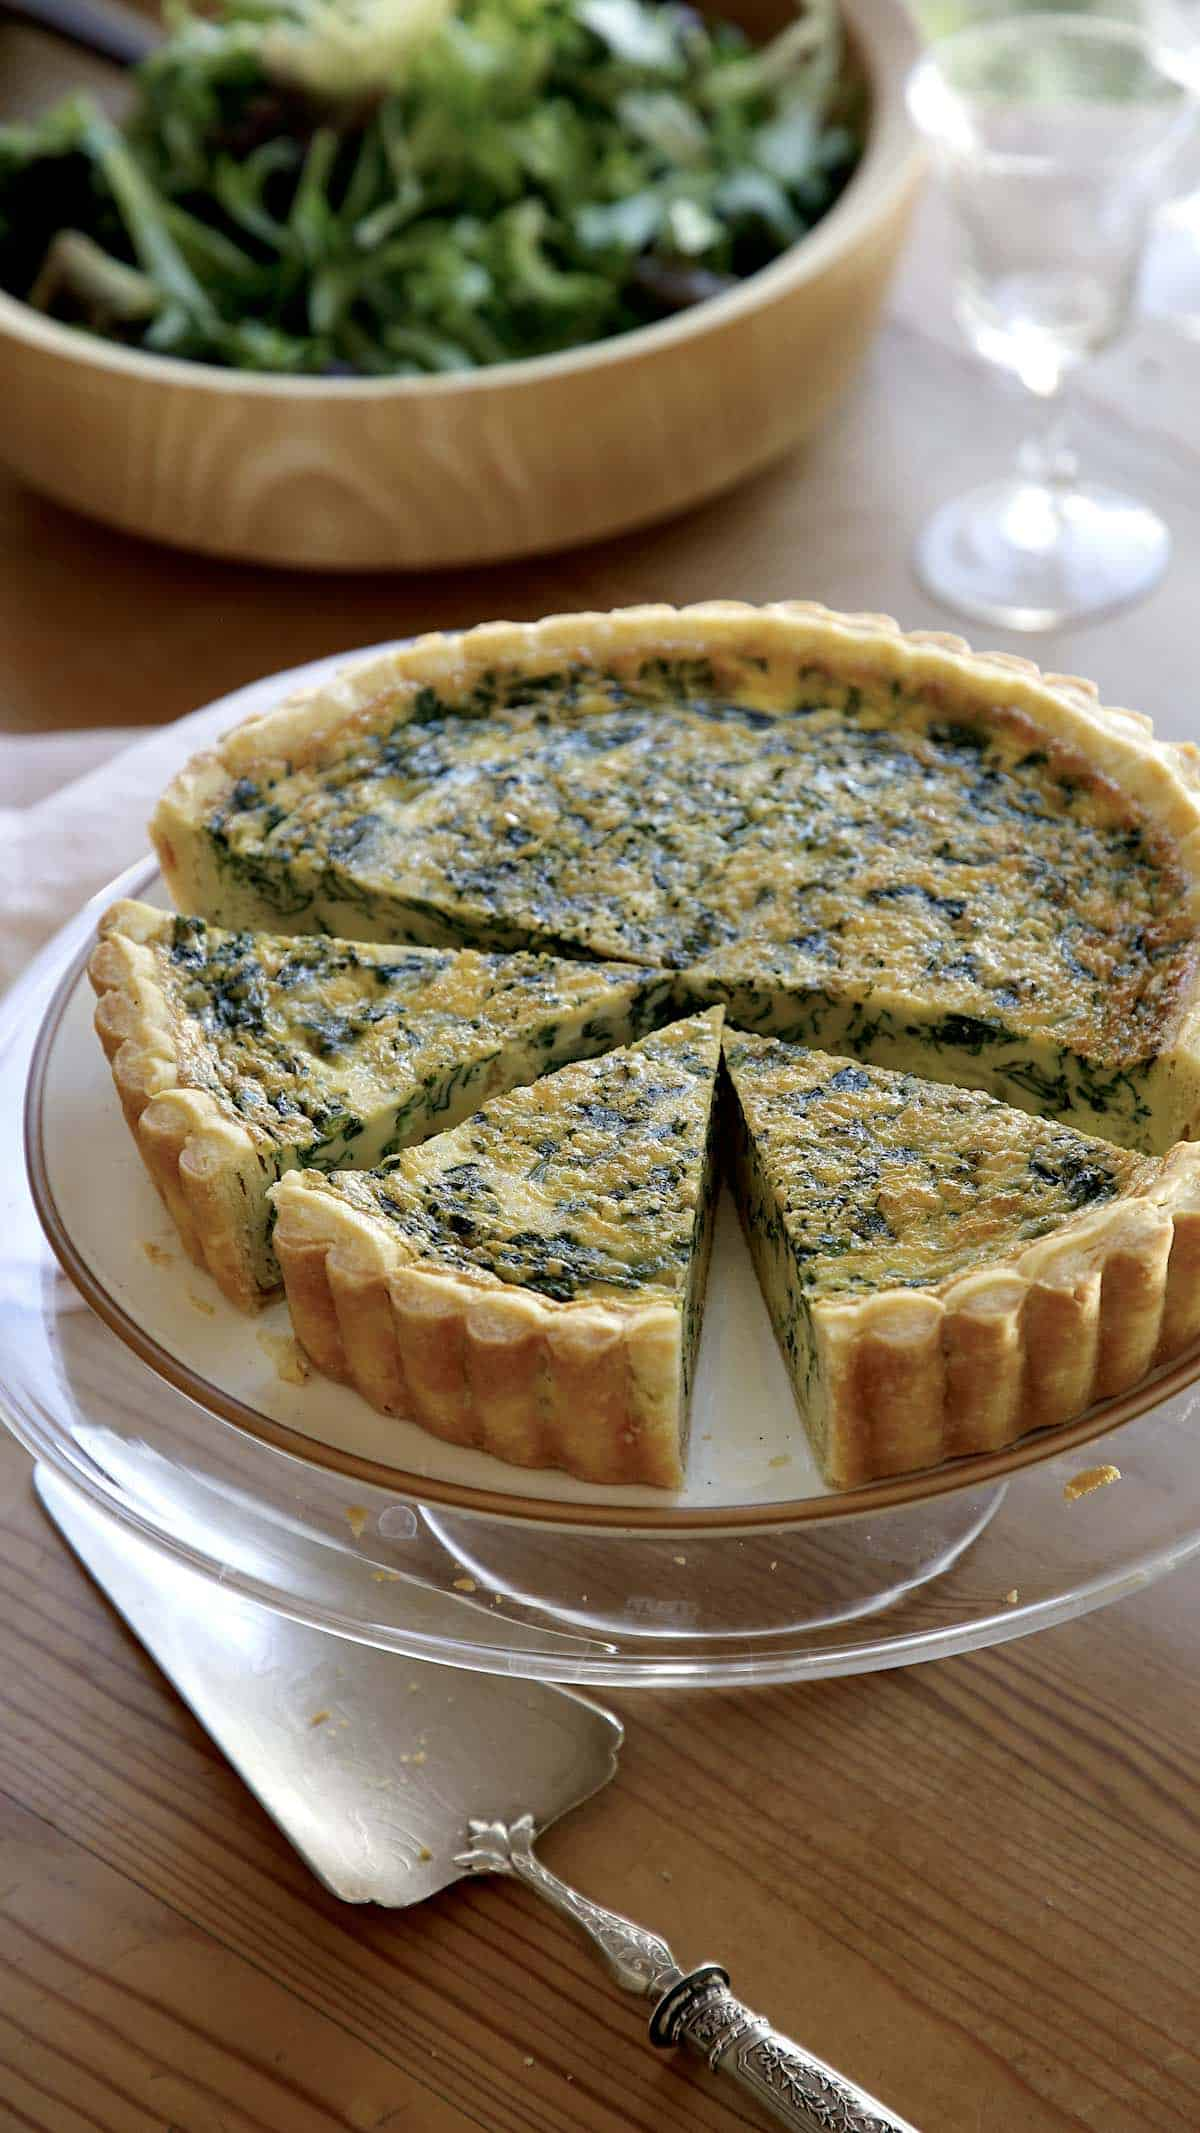 Spinach Quiche on a cake stand with slices cut and a salad bowl